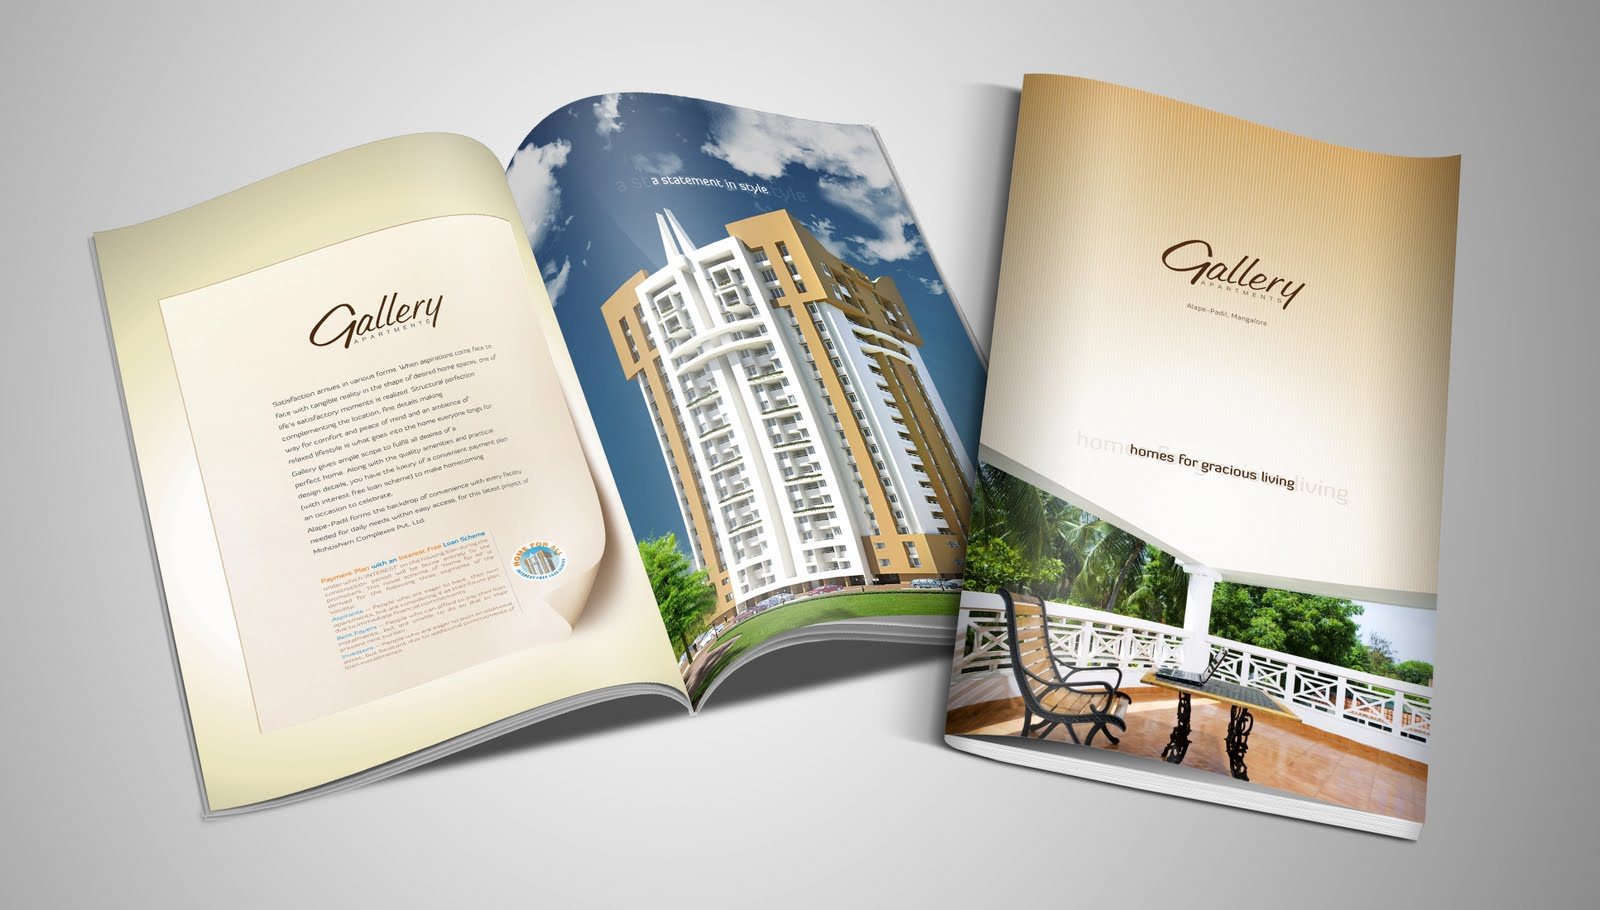 apartment brochure design. Brochure Design For Gallery Apartments Apartment